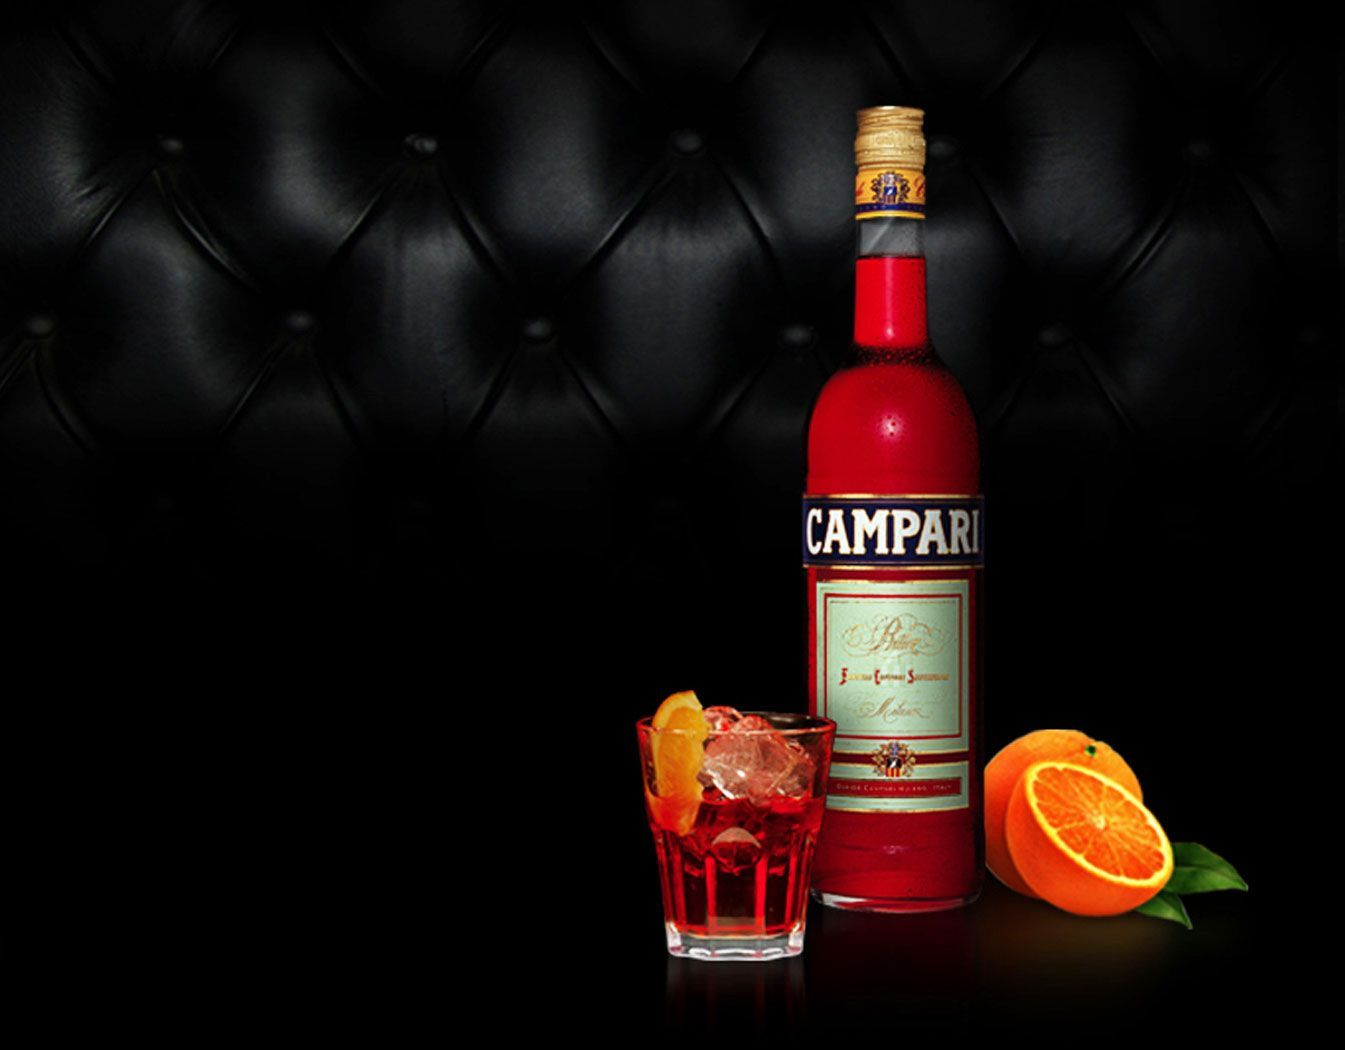 Campari feature